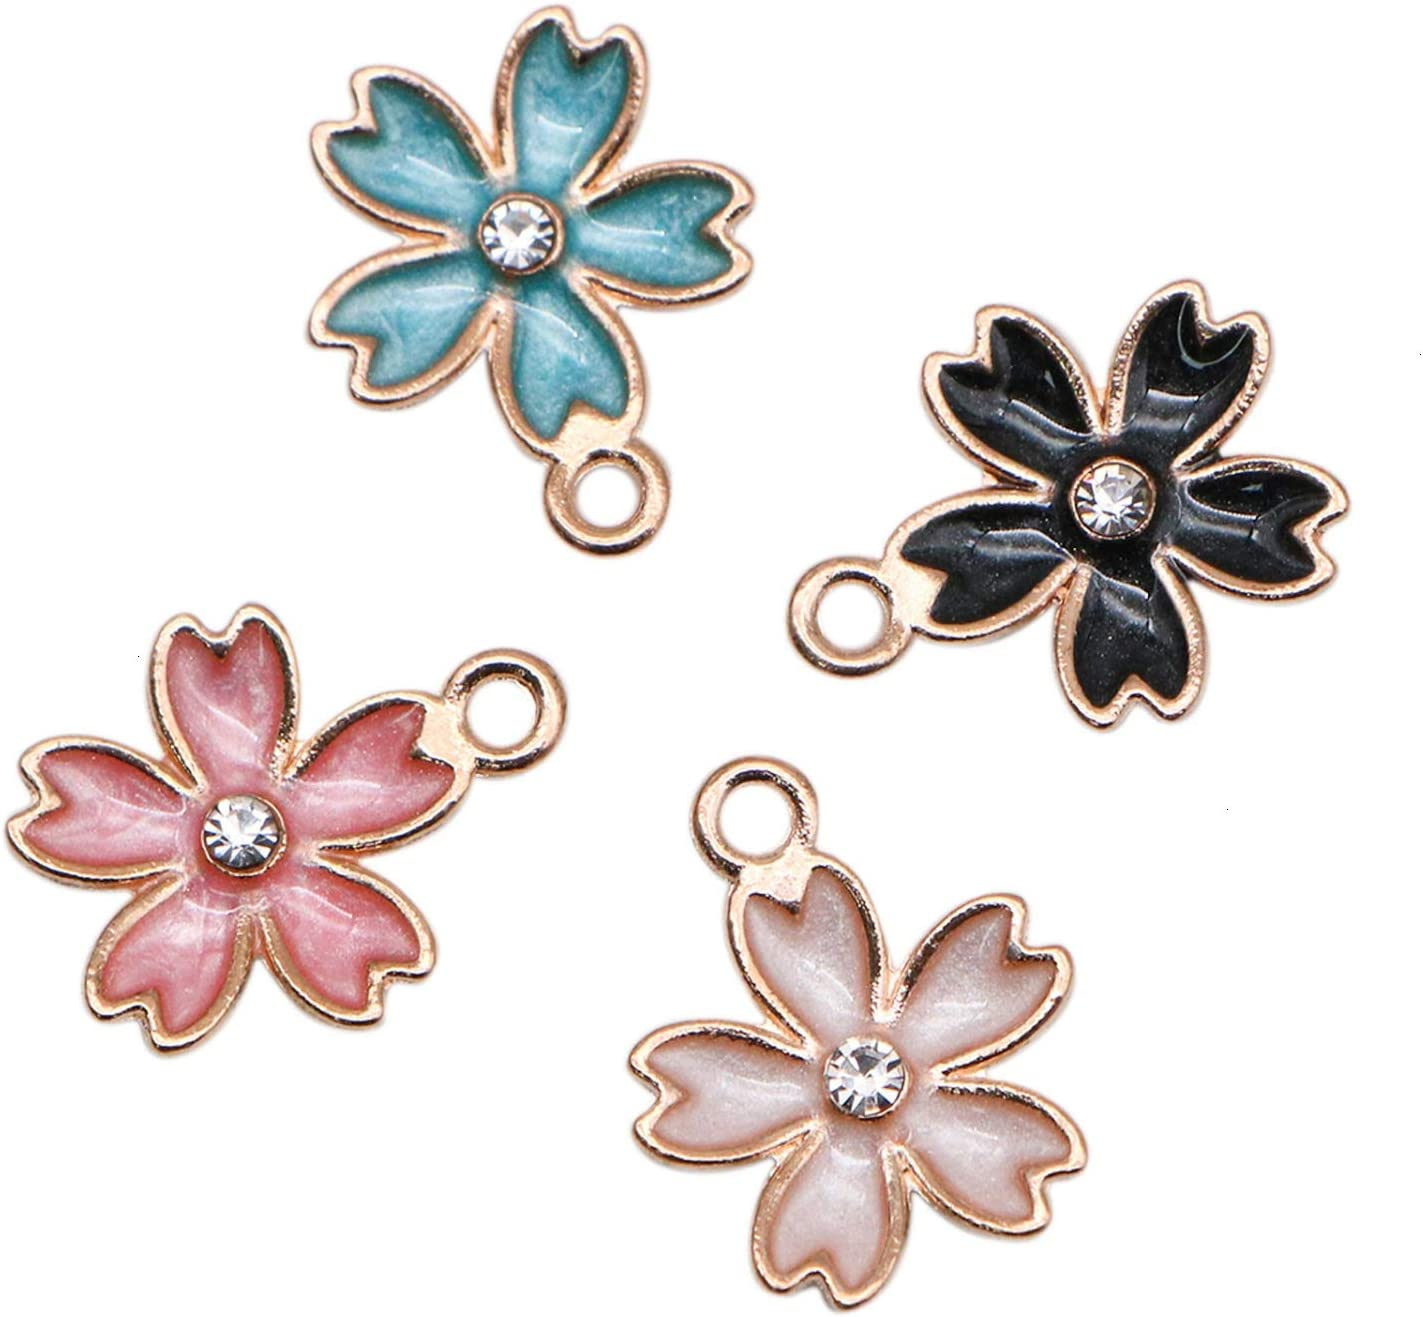 10pcs Mixed Color Cute Enamel Small Flower Charms Pendant DIY Earrings Necklace